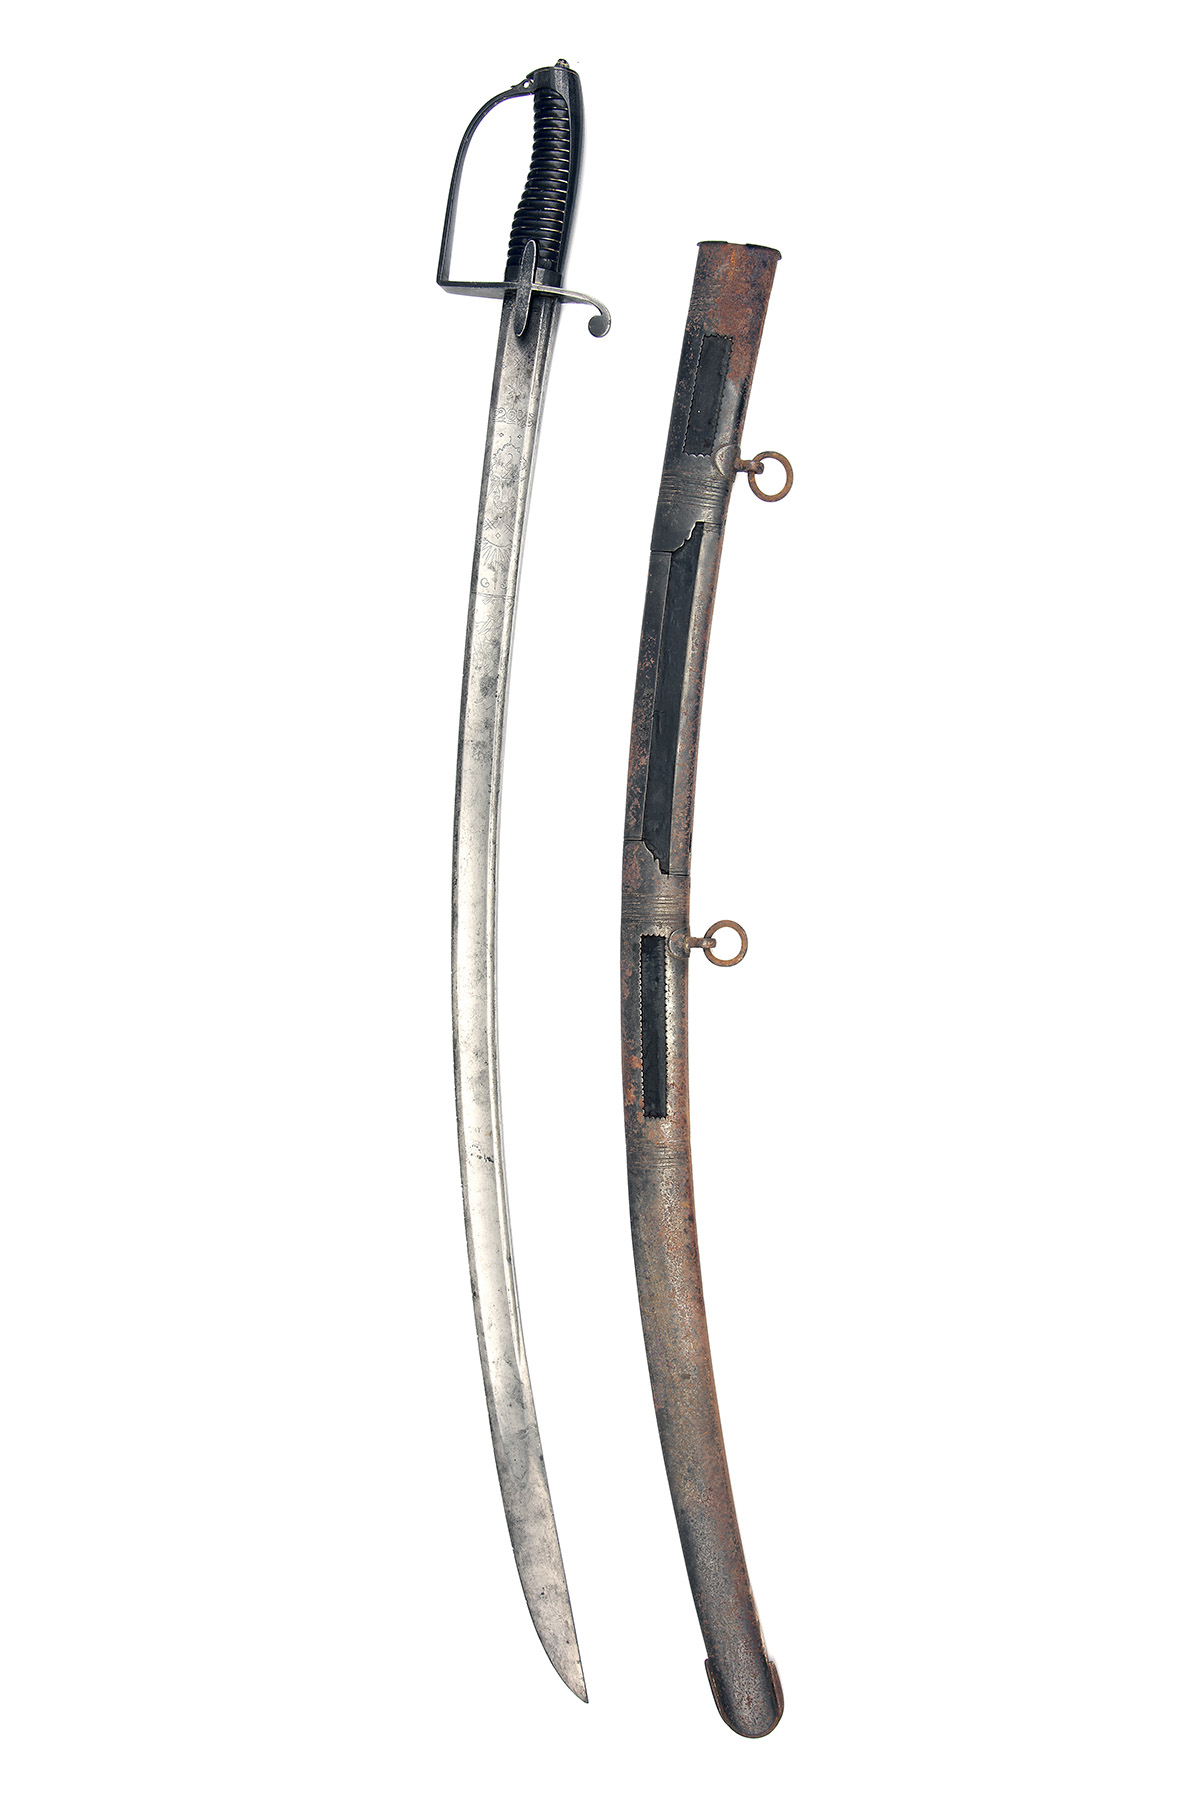 J.J. RUNKEL, SOLINGEN A SCARCE BRITISH 1788 PATTERN OFFICER'S SWORD, circa 1795, with curving